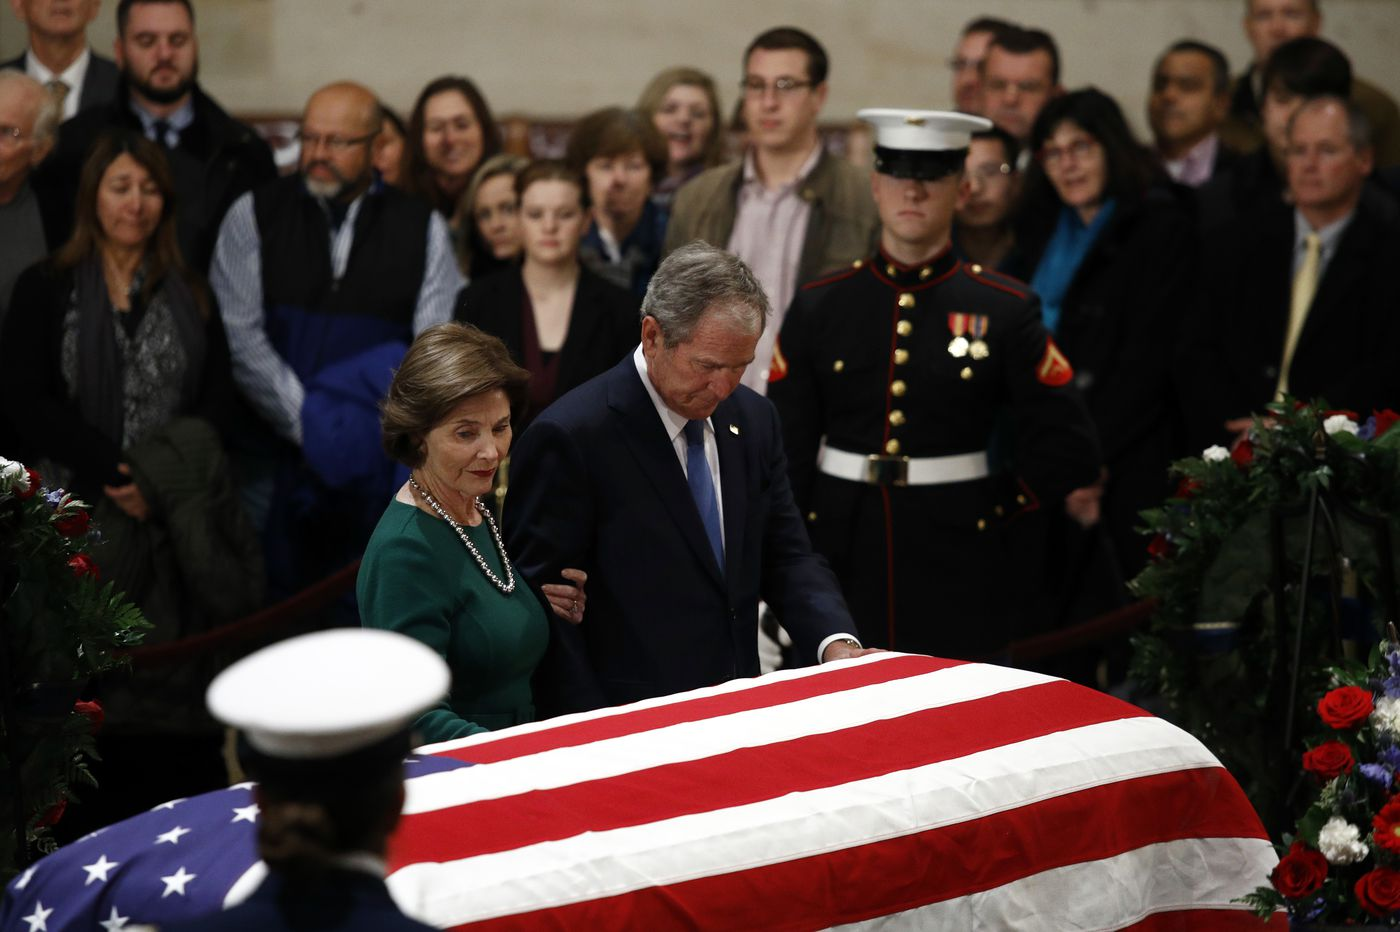 George H.W. Bush lies in state in Washington